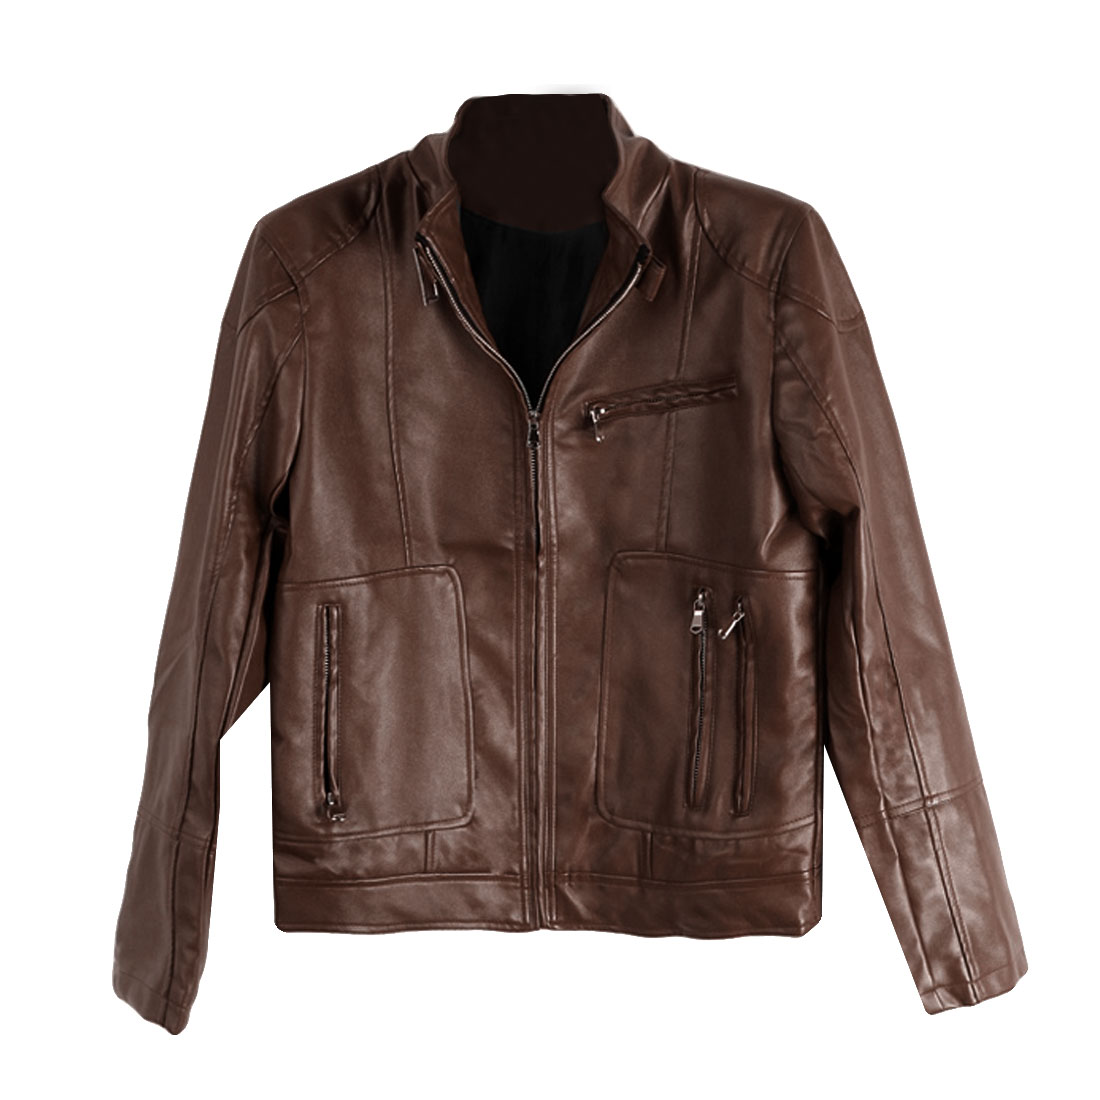 Man's Stand Collar Zip Up Fashion Brown Soft Leather Jacket M